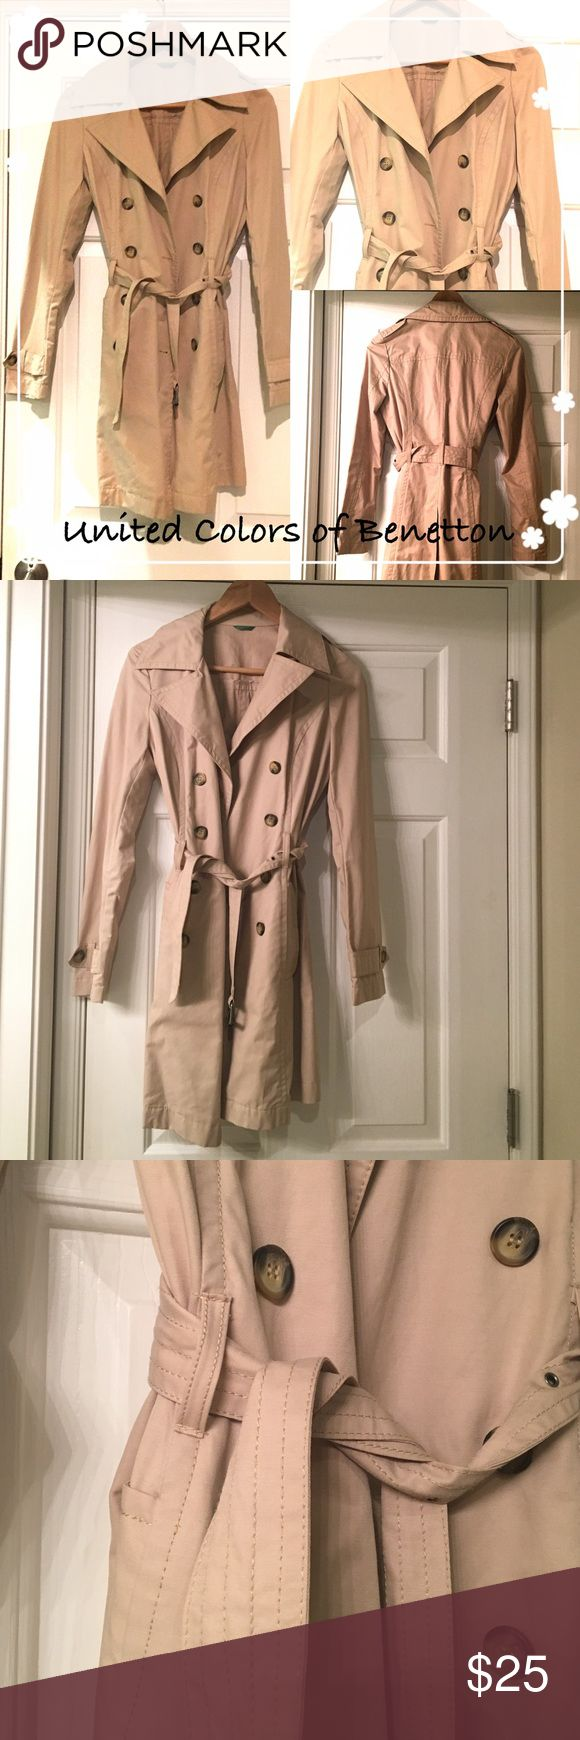 United Colors of Benetton Trench Coat ▫️lightweight trench coat in perfect condition. Comes with belt.  👍🏼condition: excellent  ⬇️offers only thru button below  🔖bundles discount  📦ship within 2 days  ❤️Thank you for visiting🙏🏼 United Colors Of Benetton Jackets & Coats Trench Coats